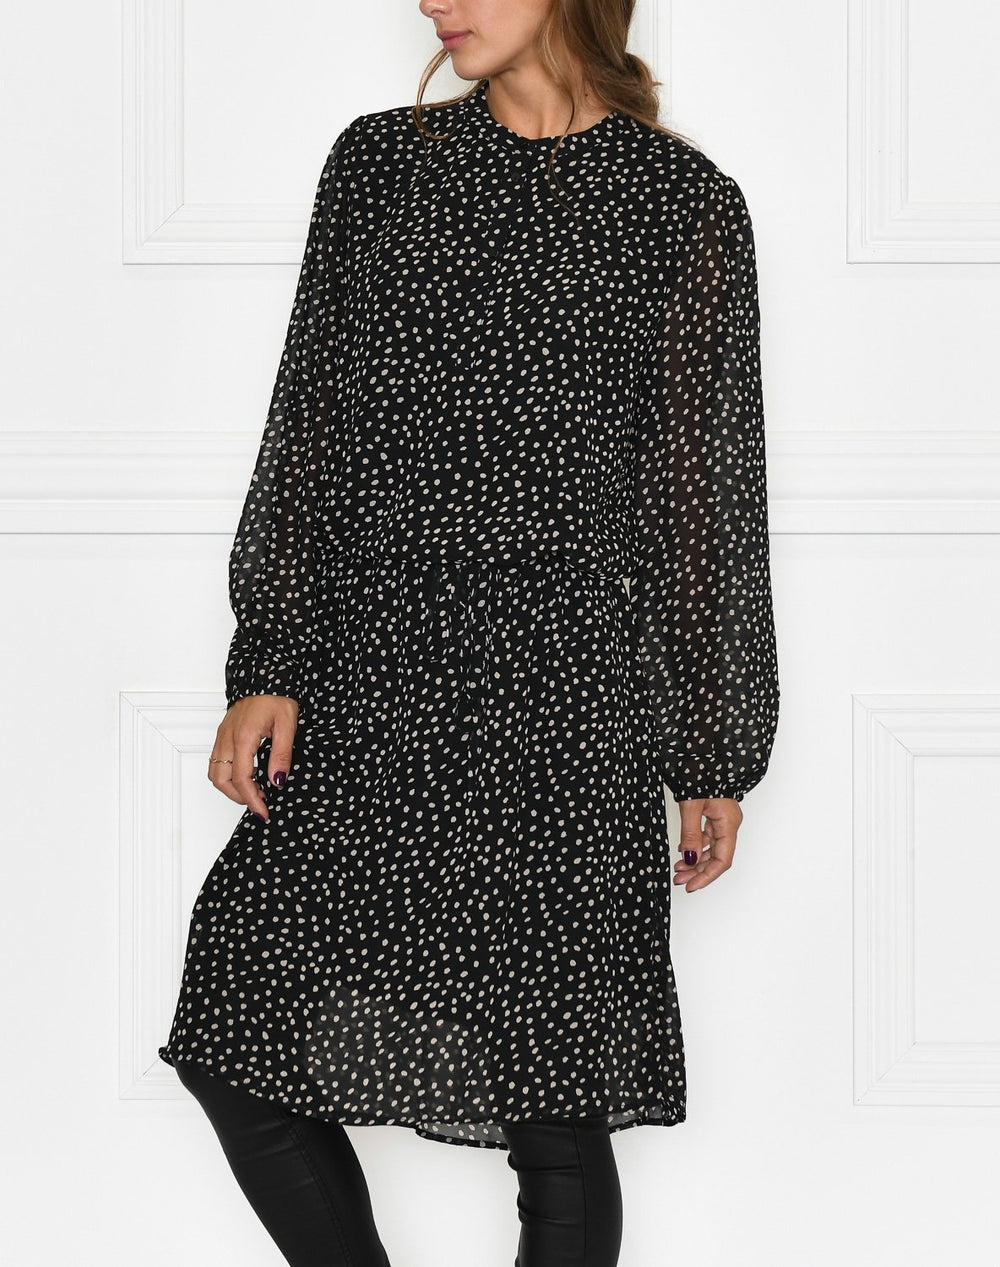 Saint Tropez AllieSZ dress dot black - Online-Mode